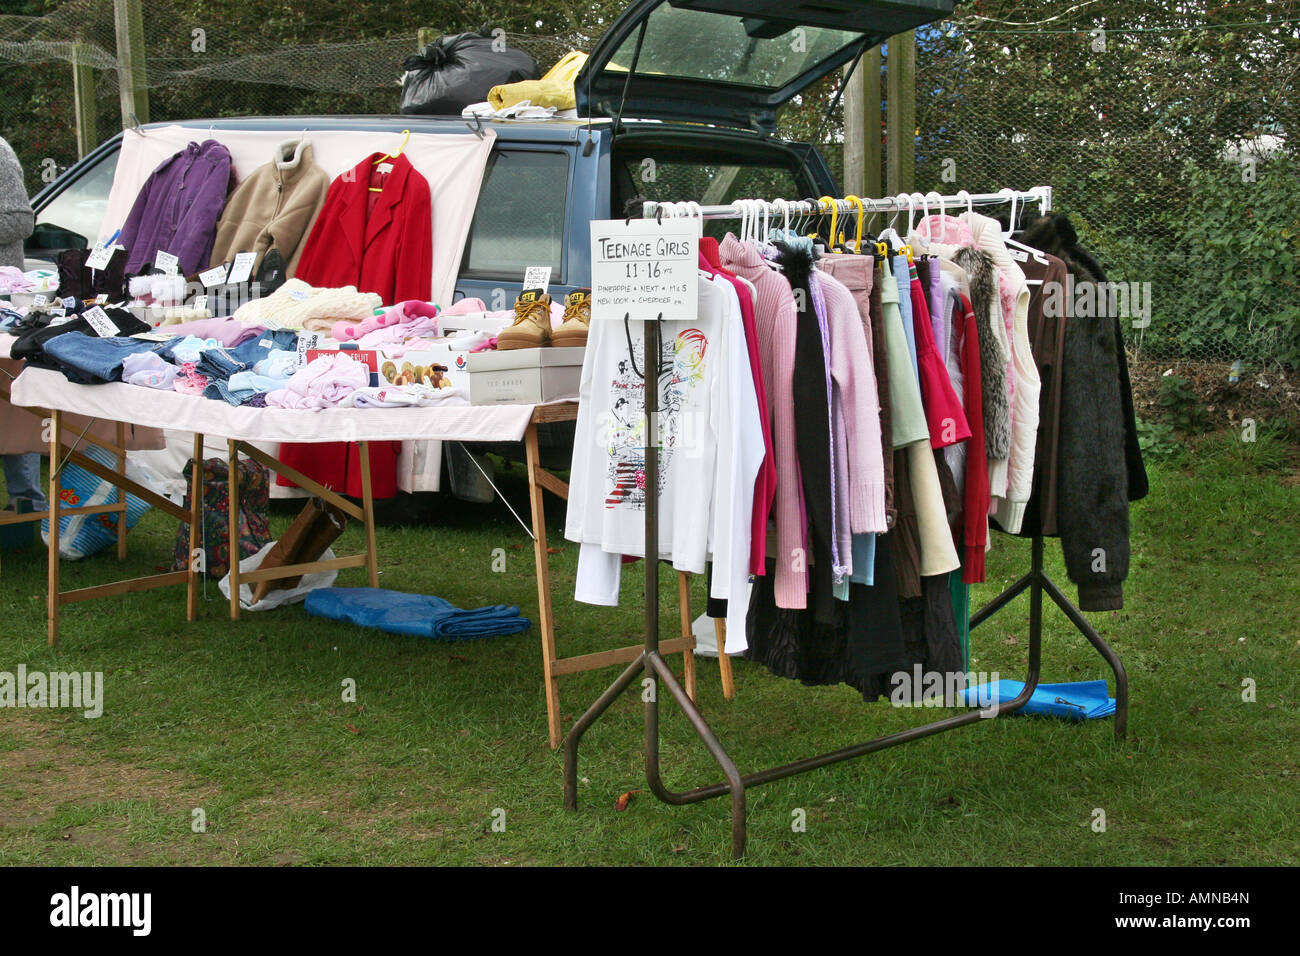 Stall at a car boot sale with general items and clothes